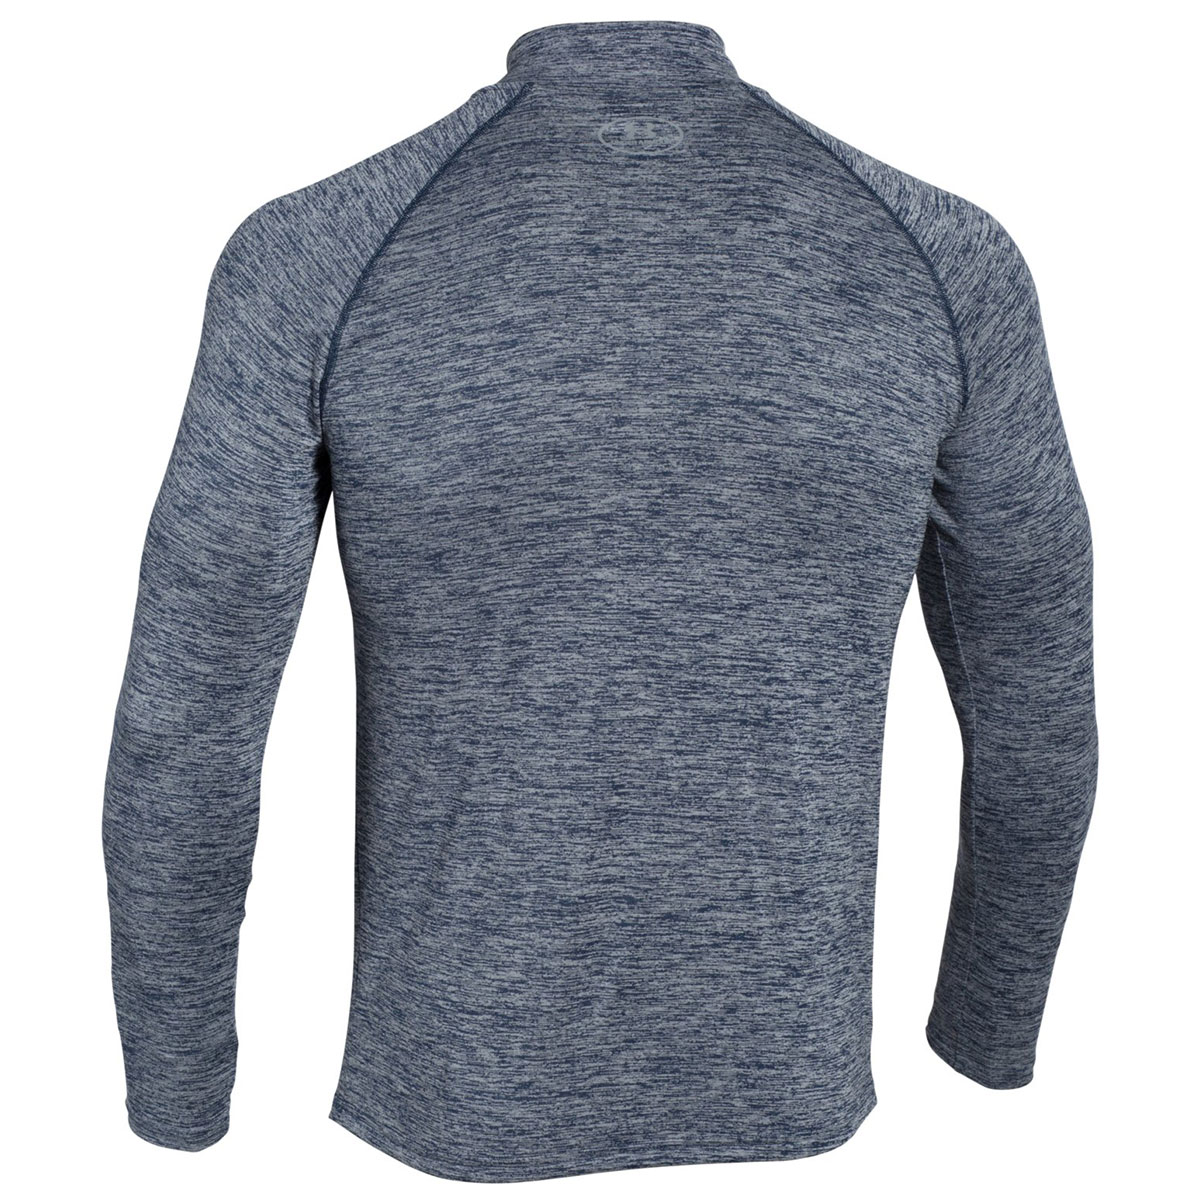 Under-Armour-Mens-UA-Tech-1-4-Zip-Long-Sleeve-Top-Workout-Layer-27-OFF-RRP thumbnail 5